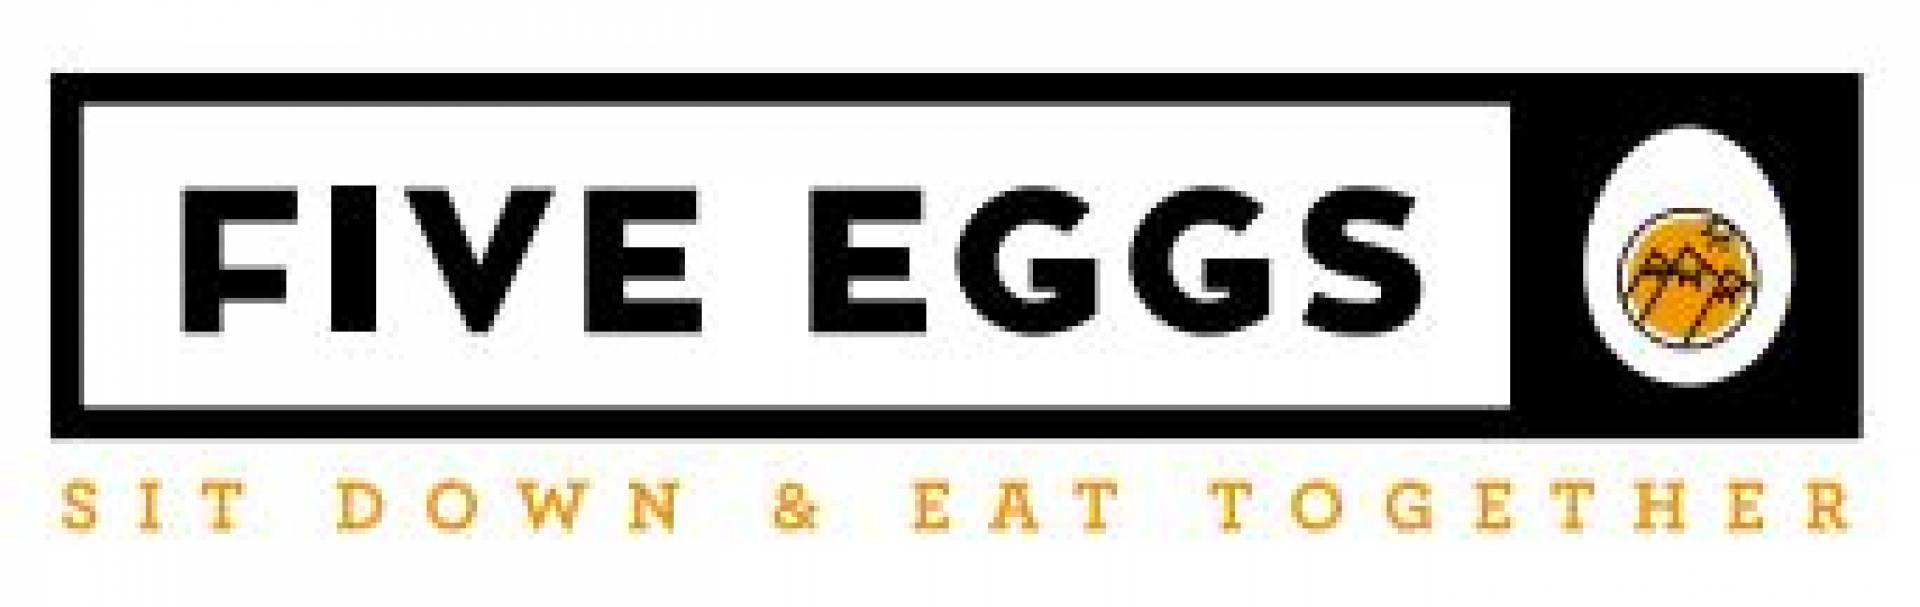 Five Eggs Meals logo